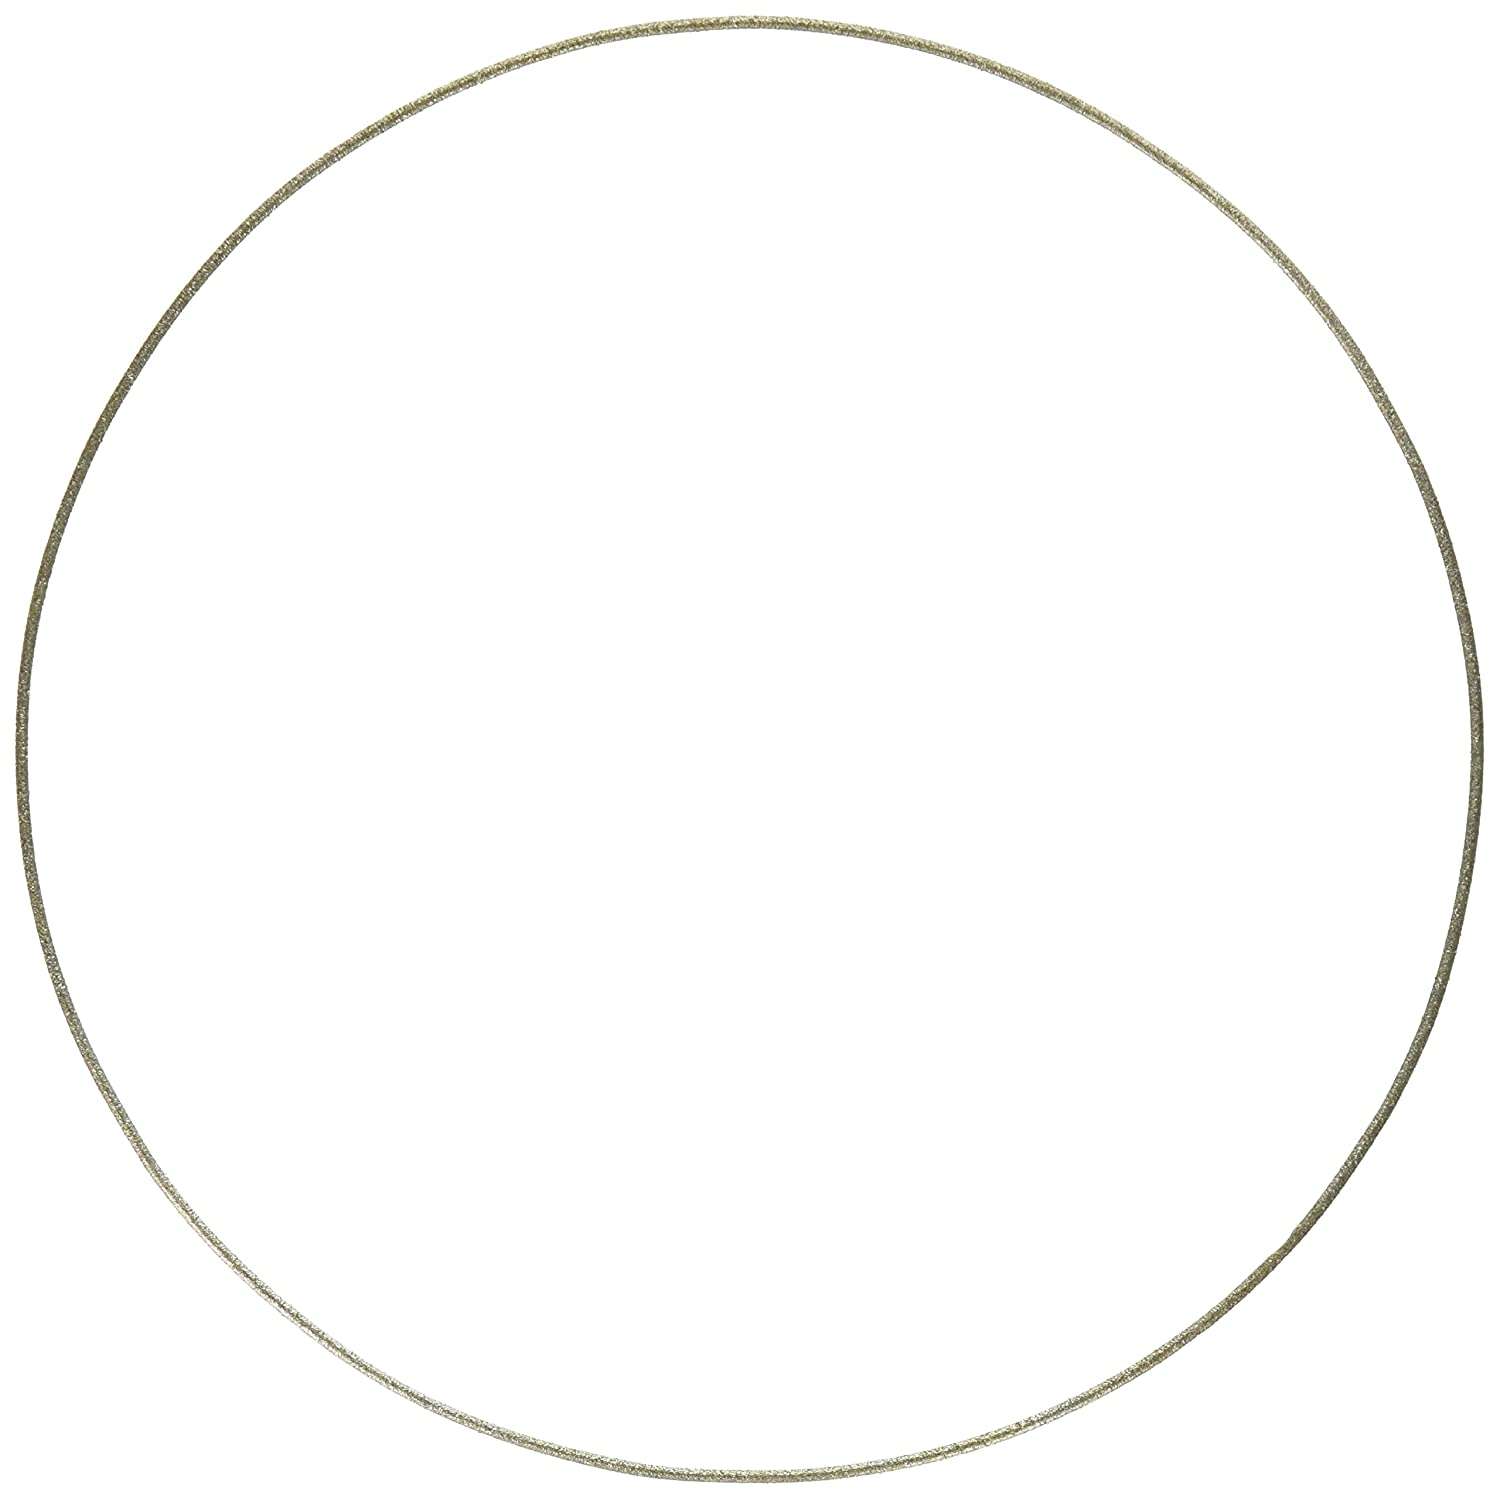 Kent Blades 7-Inch Compatible Zephyr Gryphon Standard Replacement Ring Saw Diamond Blade Grit 150 Kent Supplies GLS-214